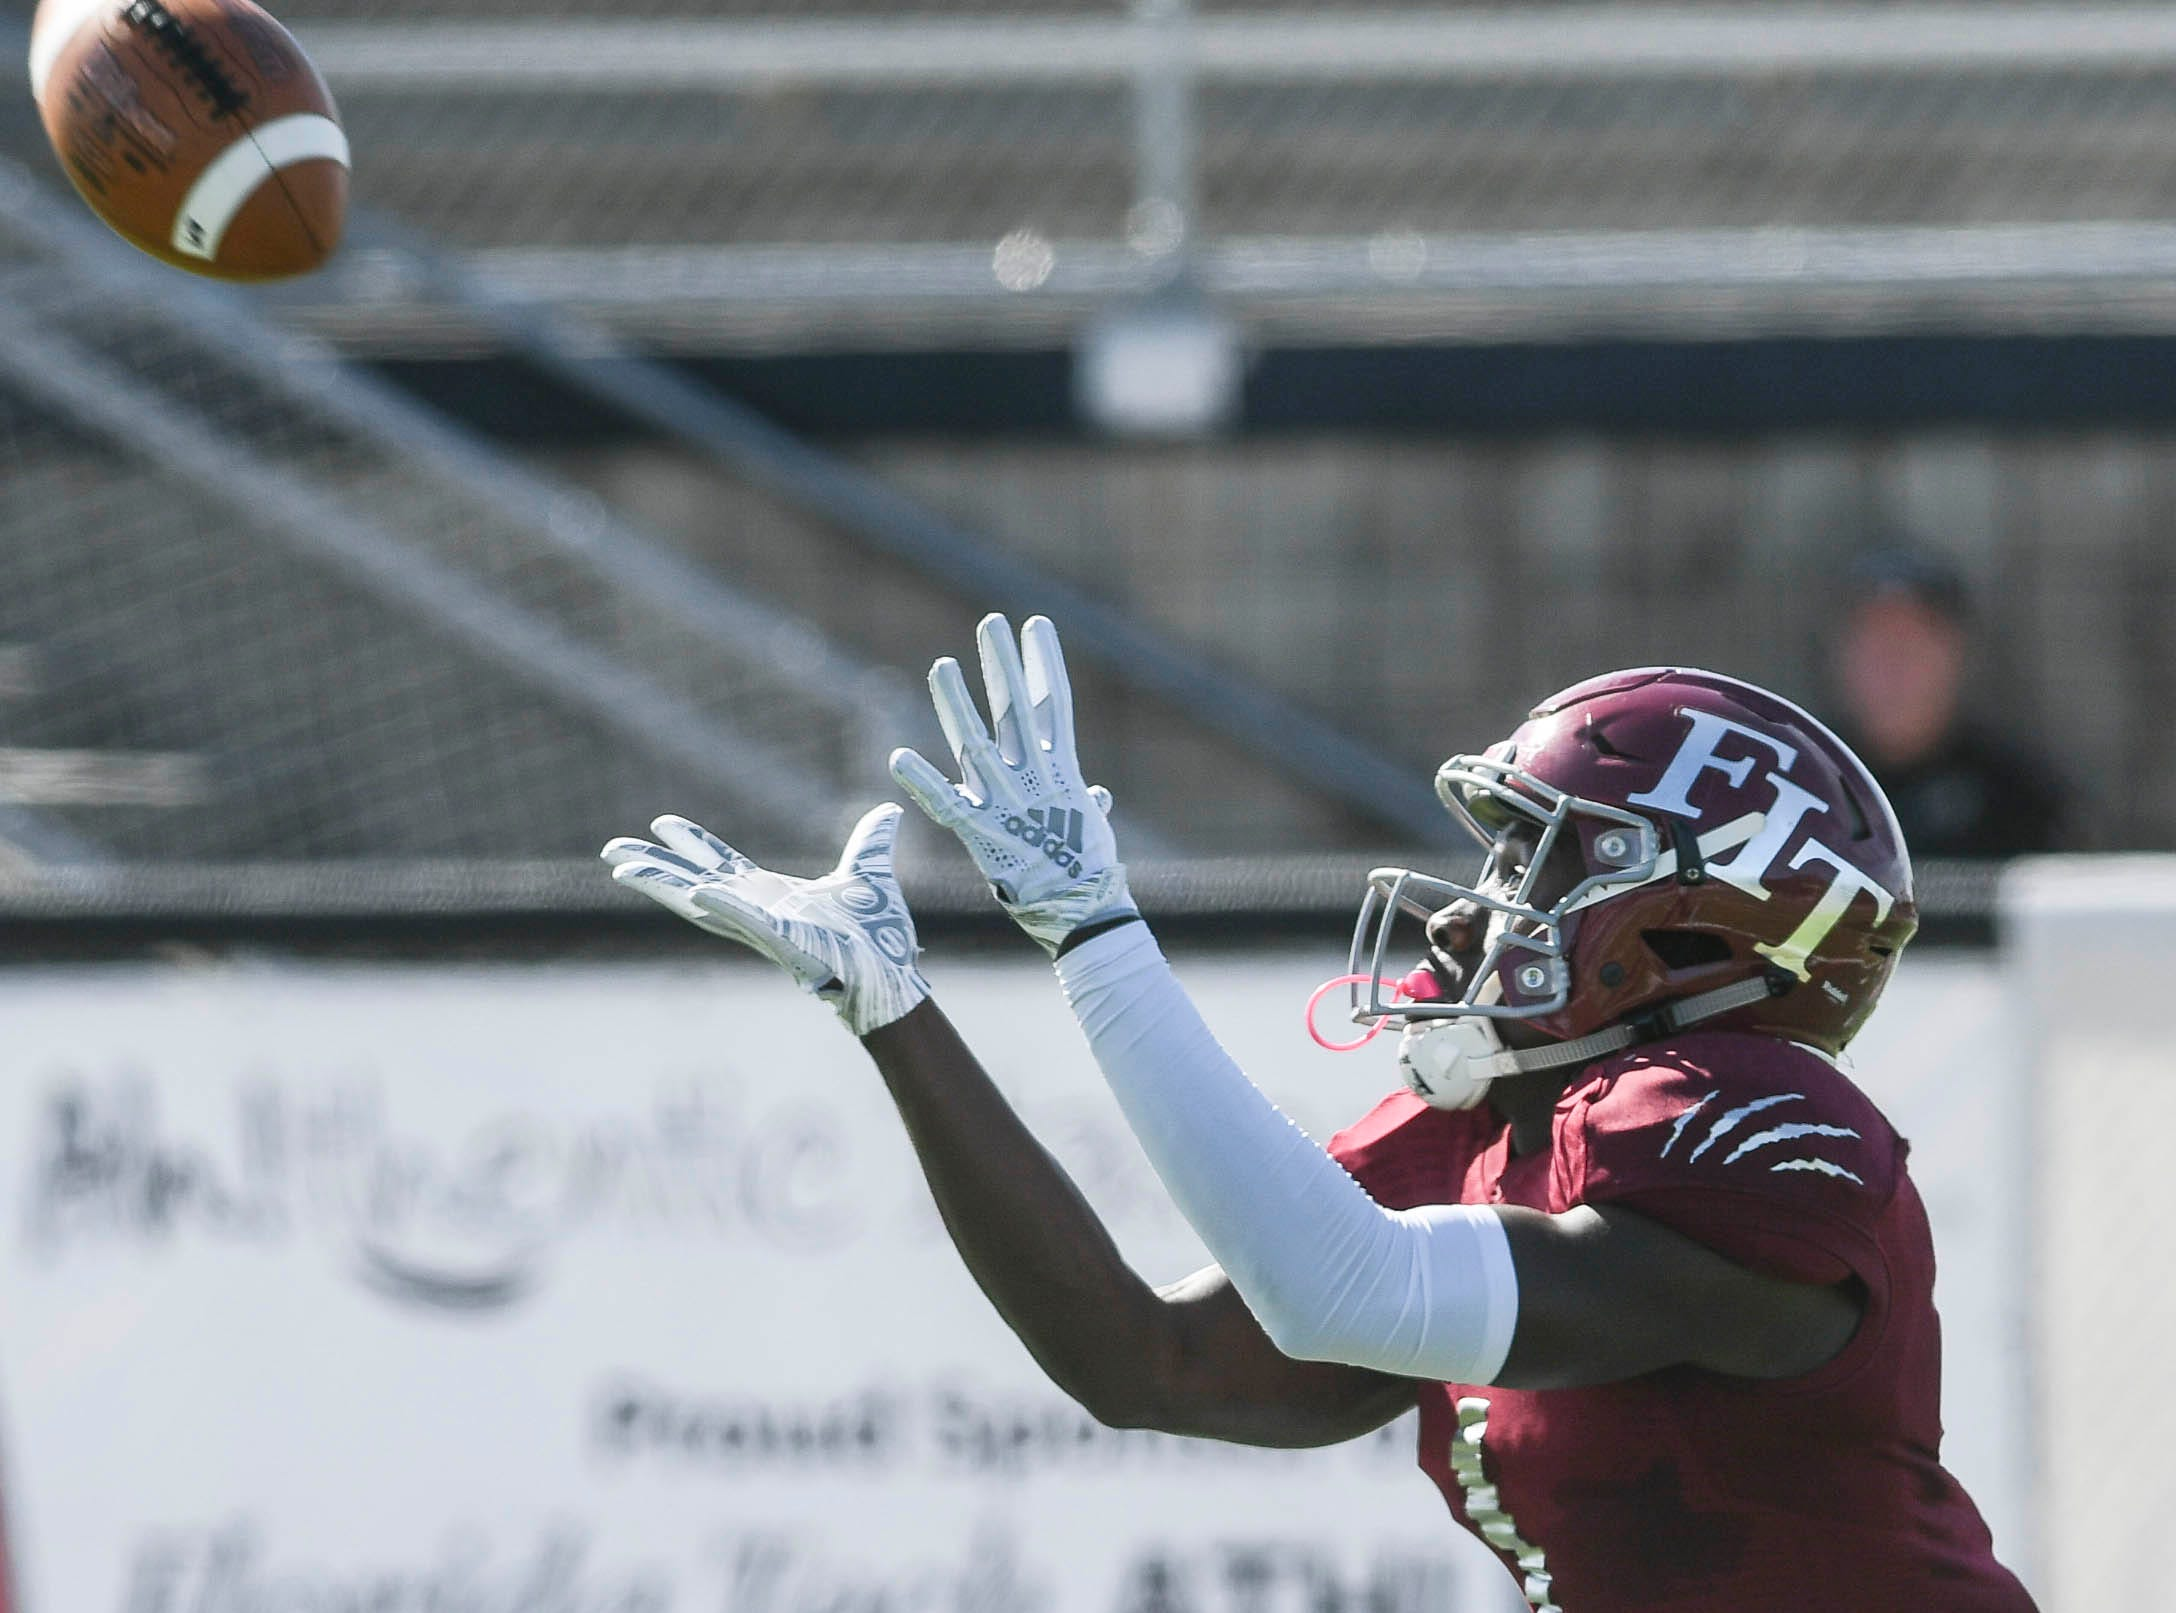 Romell Guerrier of Florida Tech catches a touchdown pass during Saturday's game.